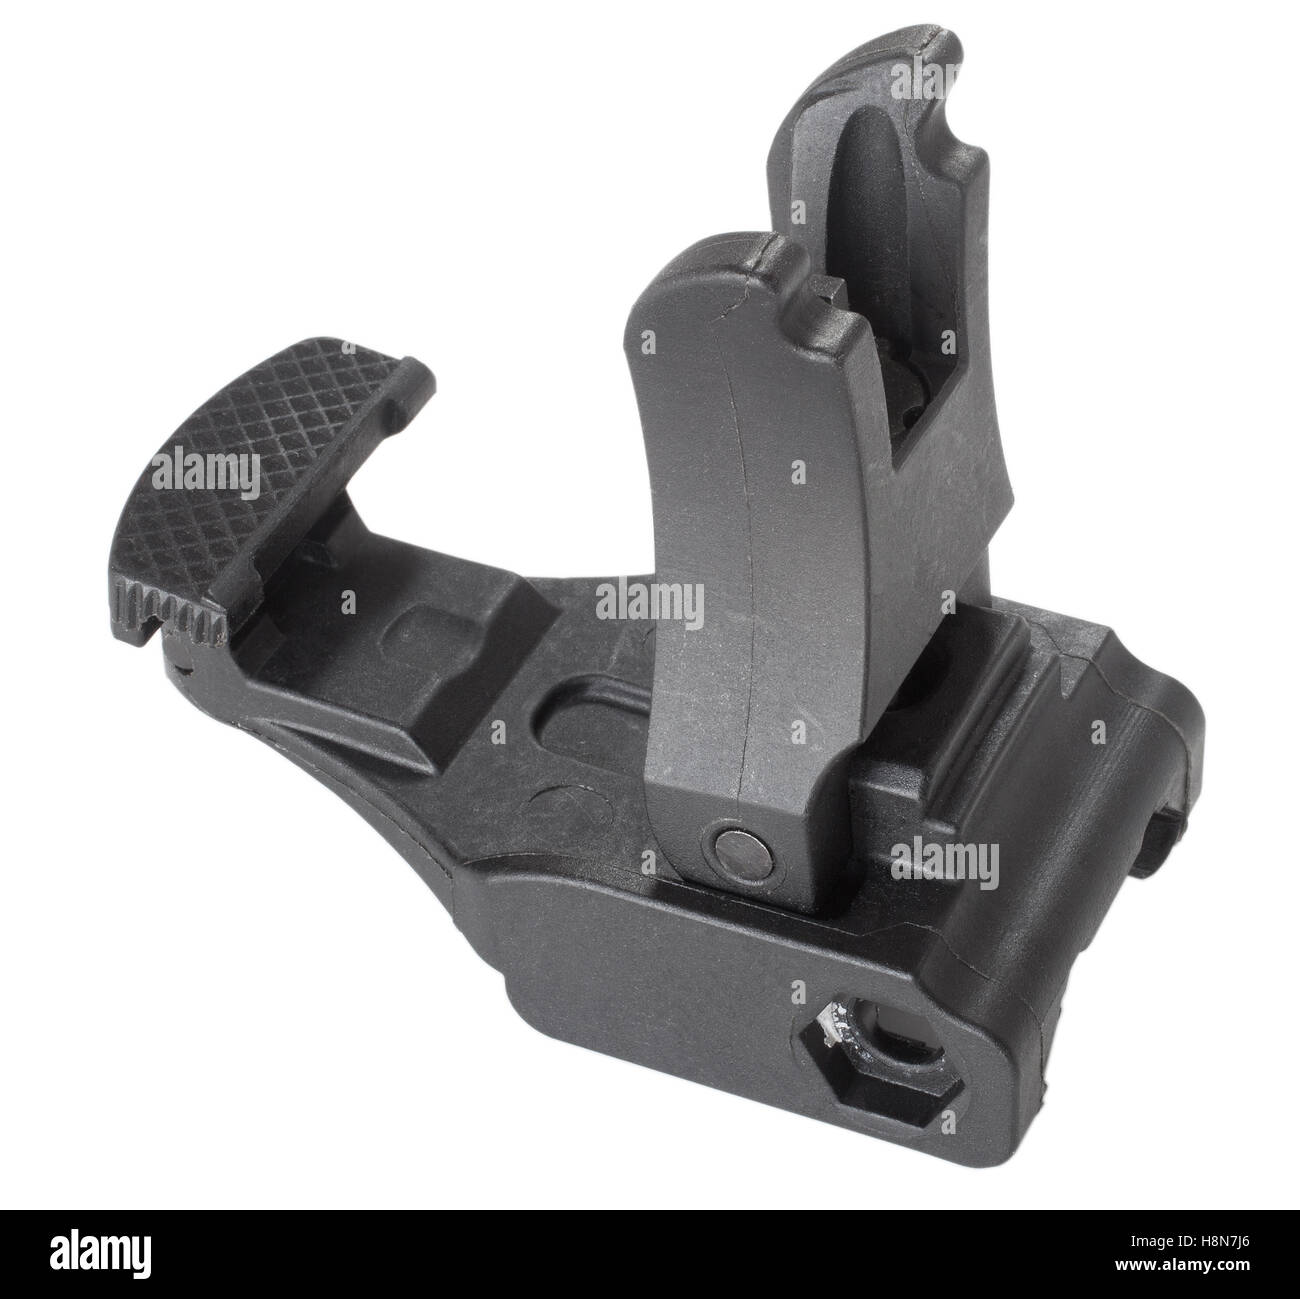 Front sights for a semi automatic rifle that are upright on white - Stock Image